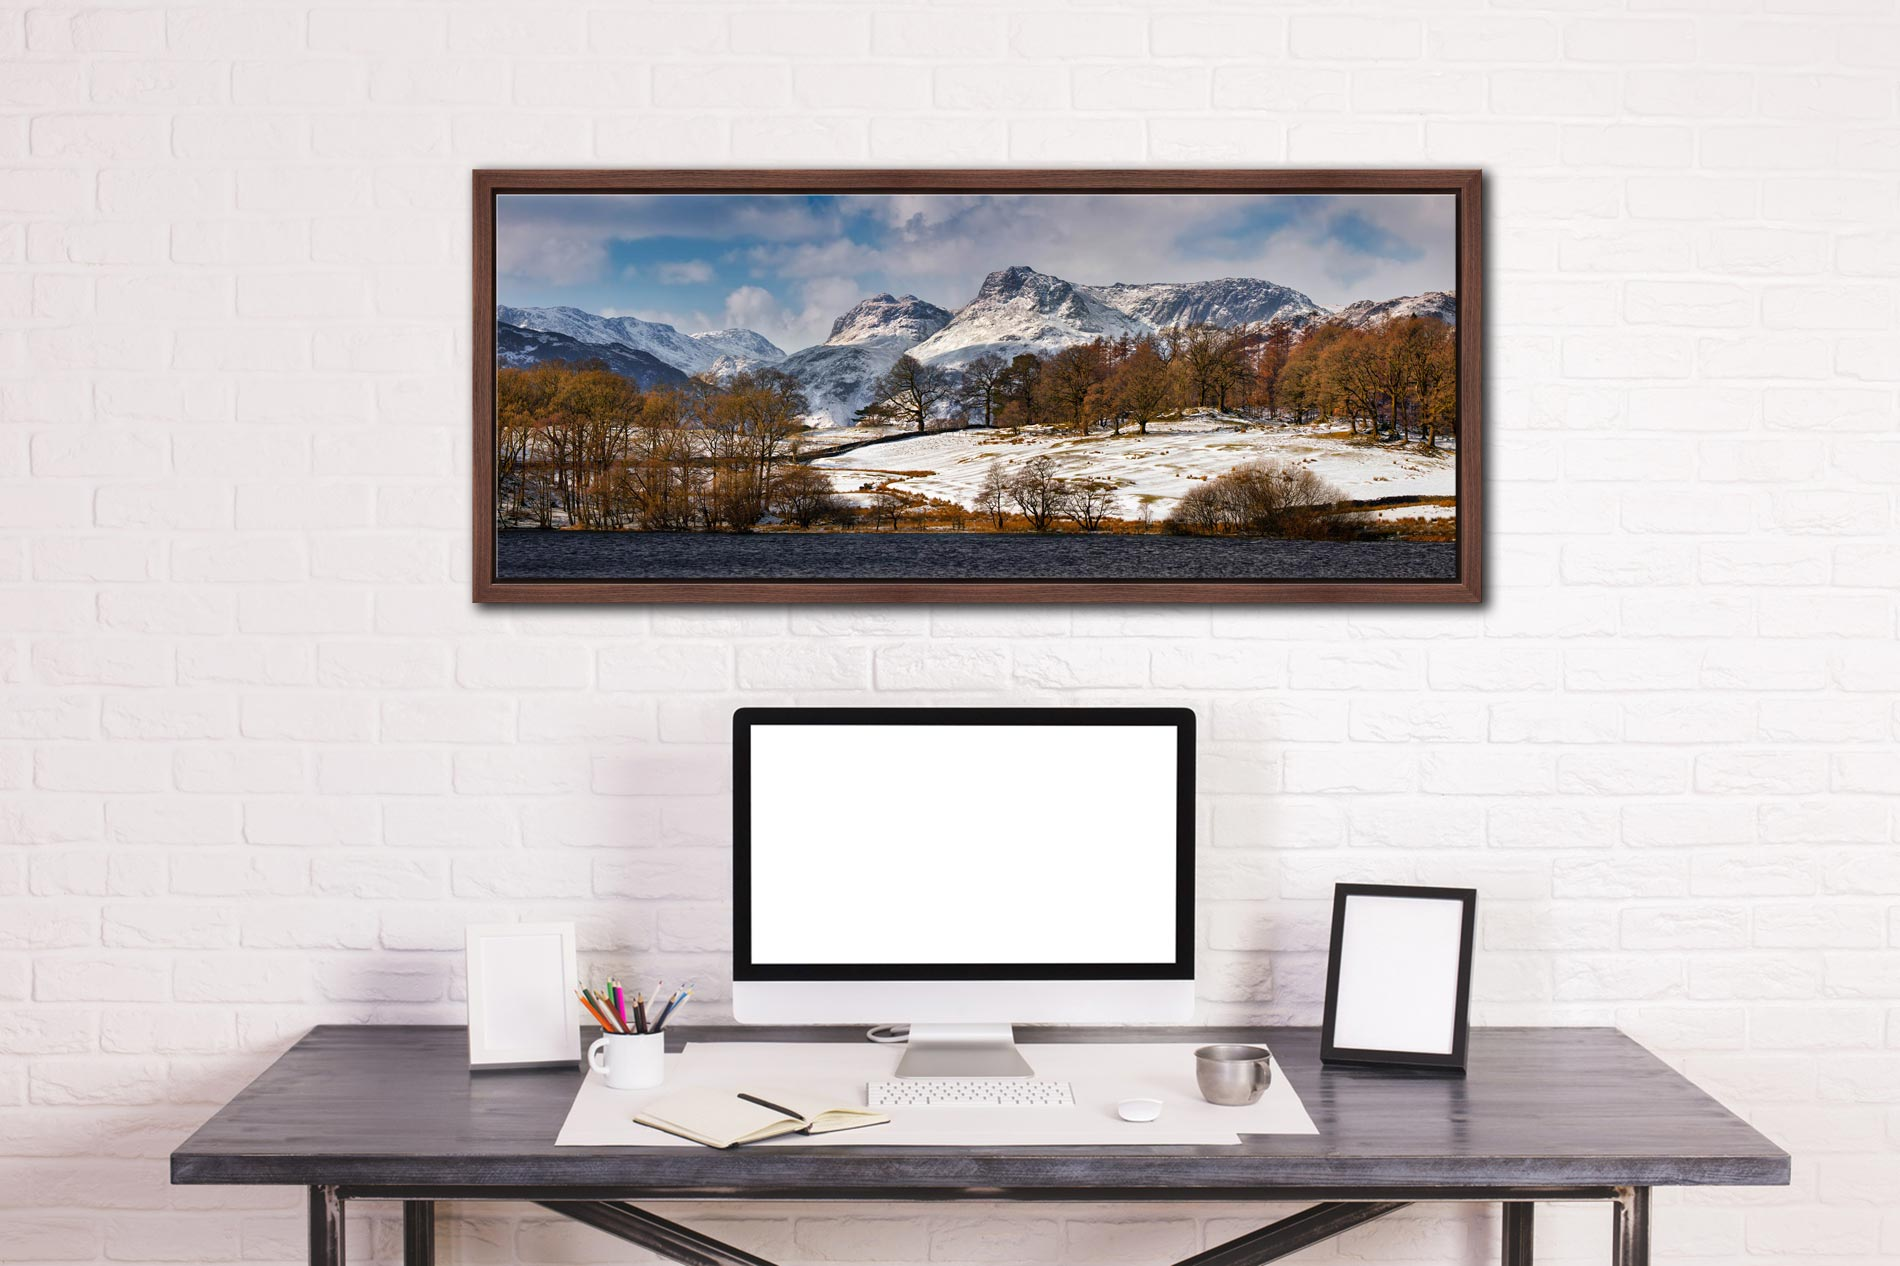 The Langdale Pikes in winter viewed from Loughrigg Tarn in Langdale - Walnut floater frame with acrylic glazing on Wall